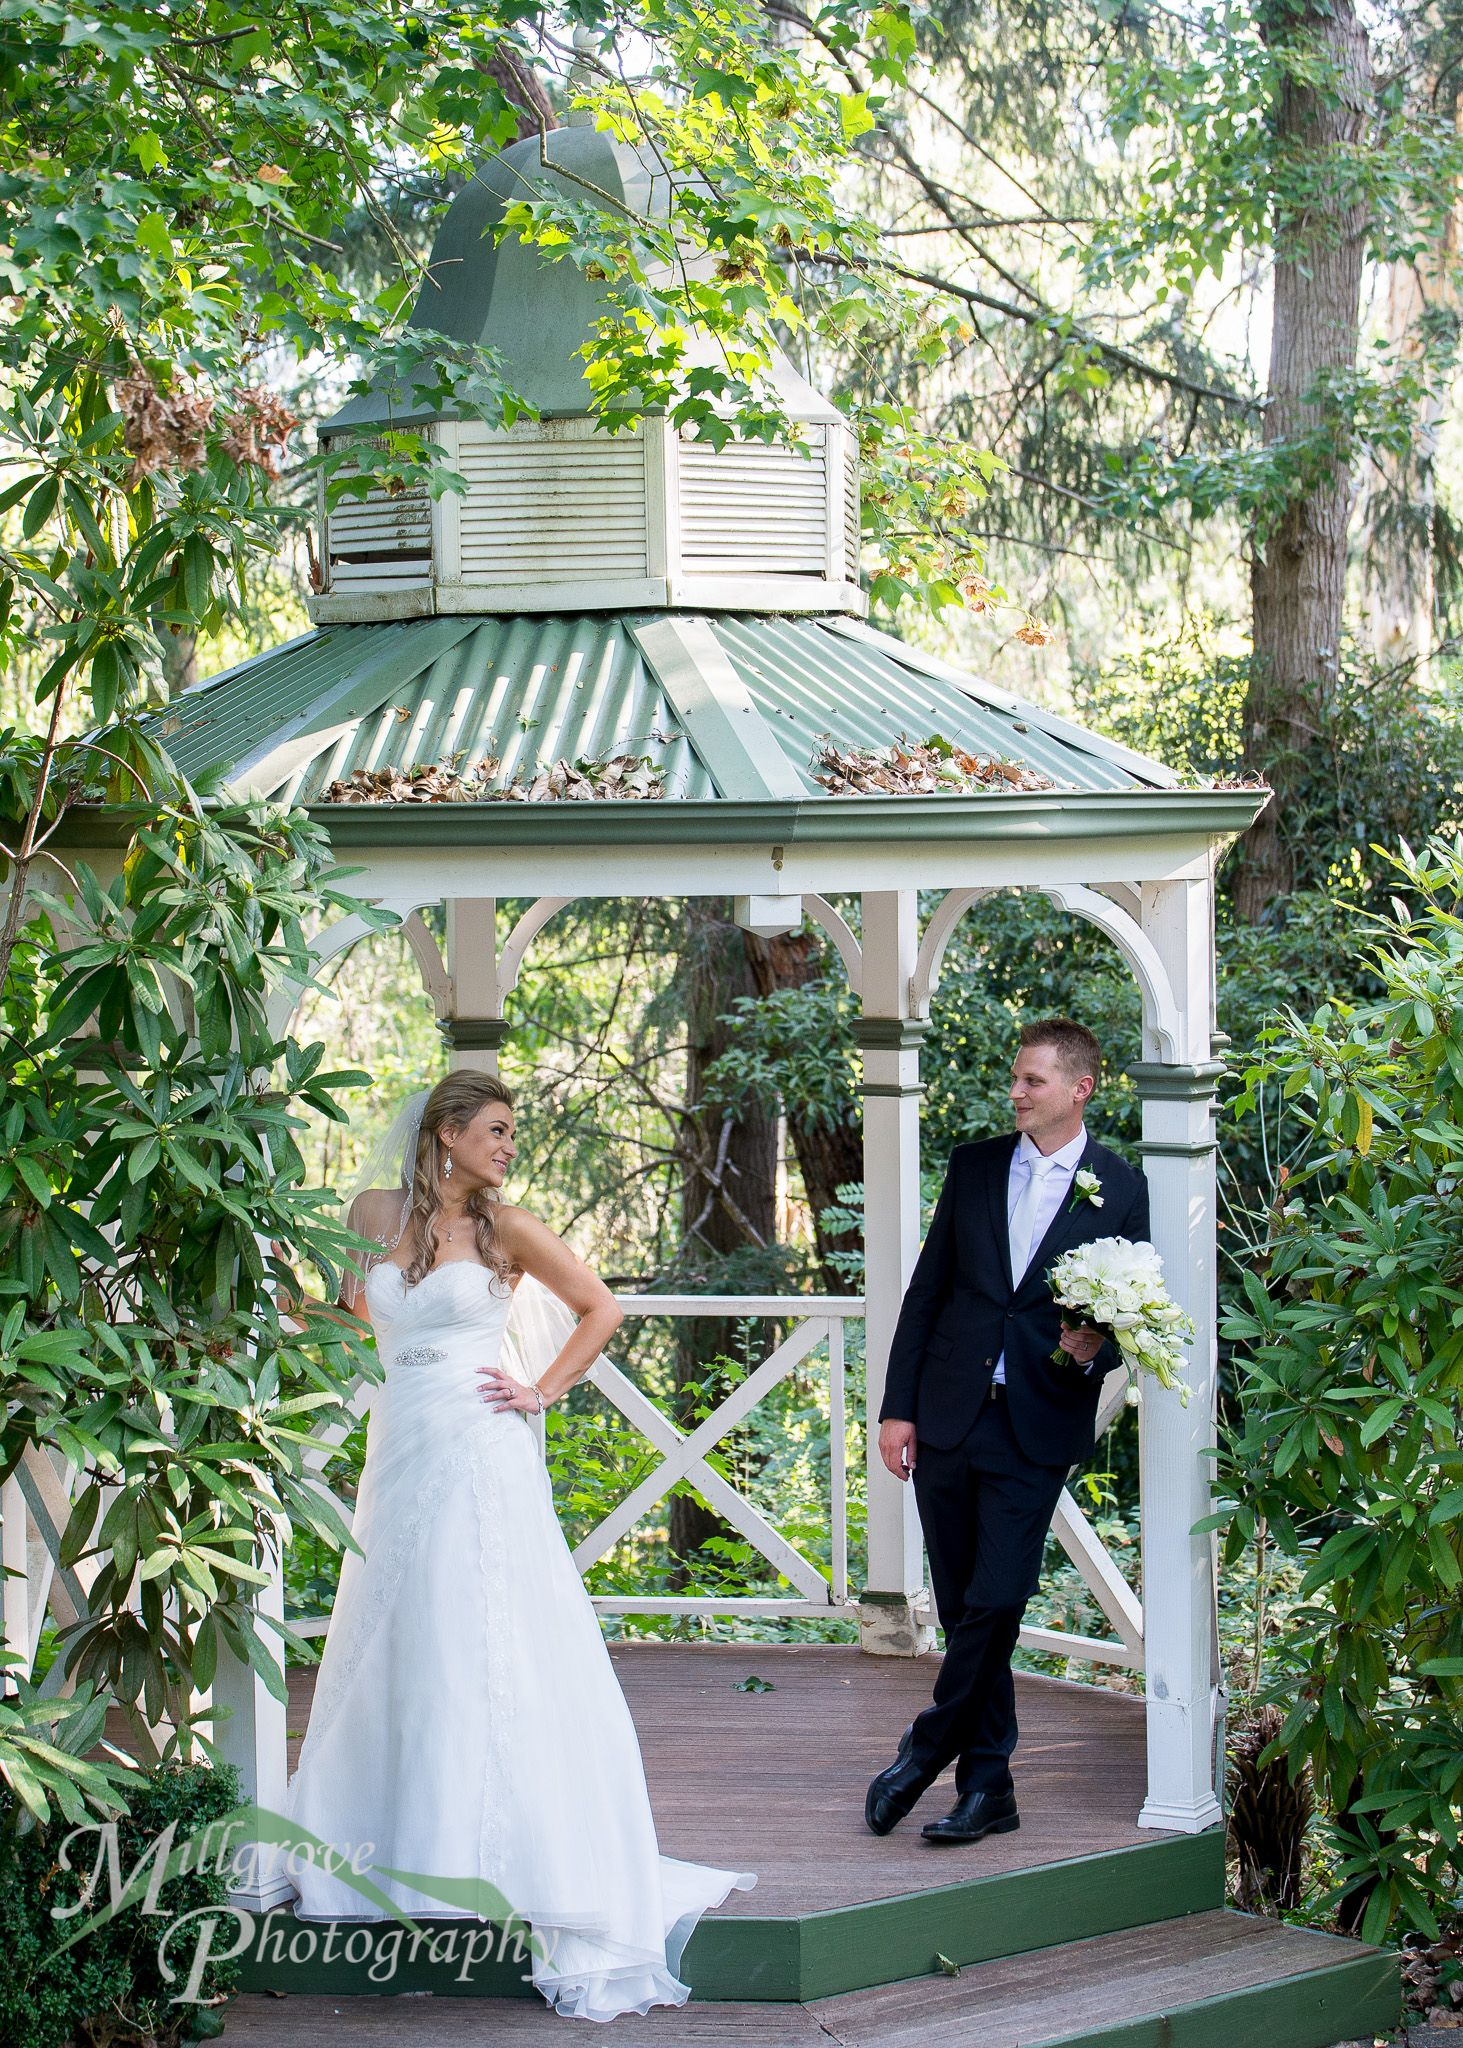 Bride and groom in the gazebo at Chateau Wyuna